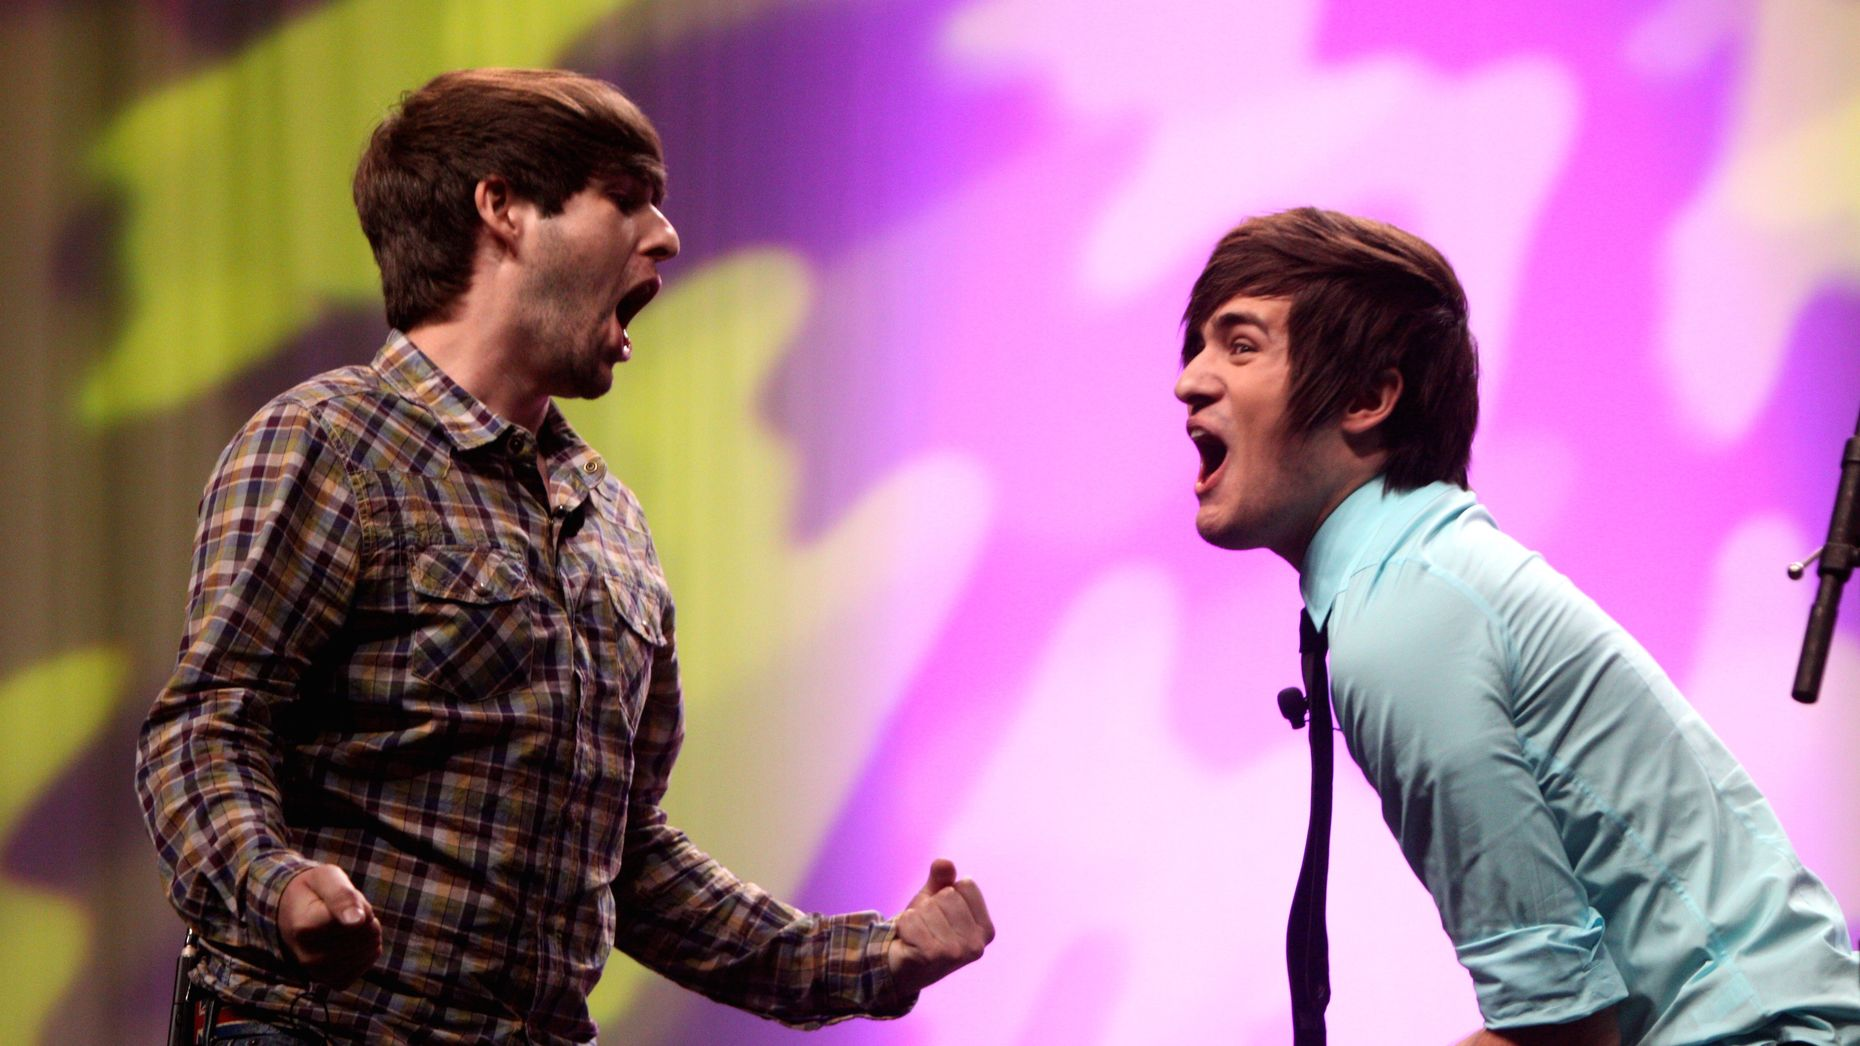 Ian Hecox and Anthony Padilla, the creators and stars of Smosh. Photo by Flickr/Gage Skidmore.